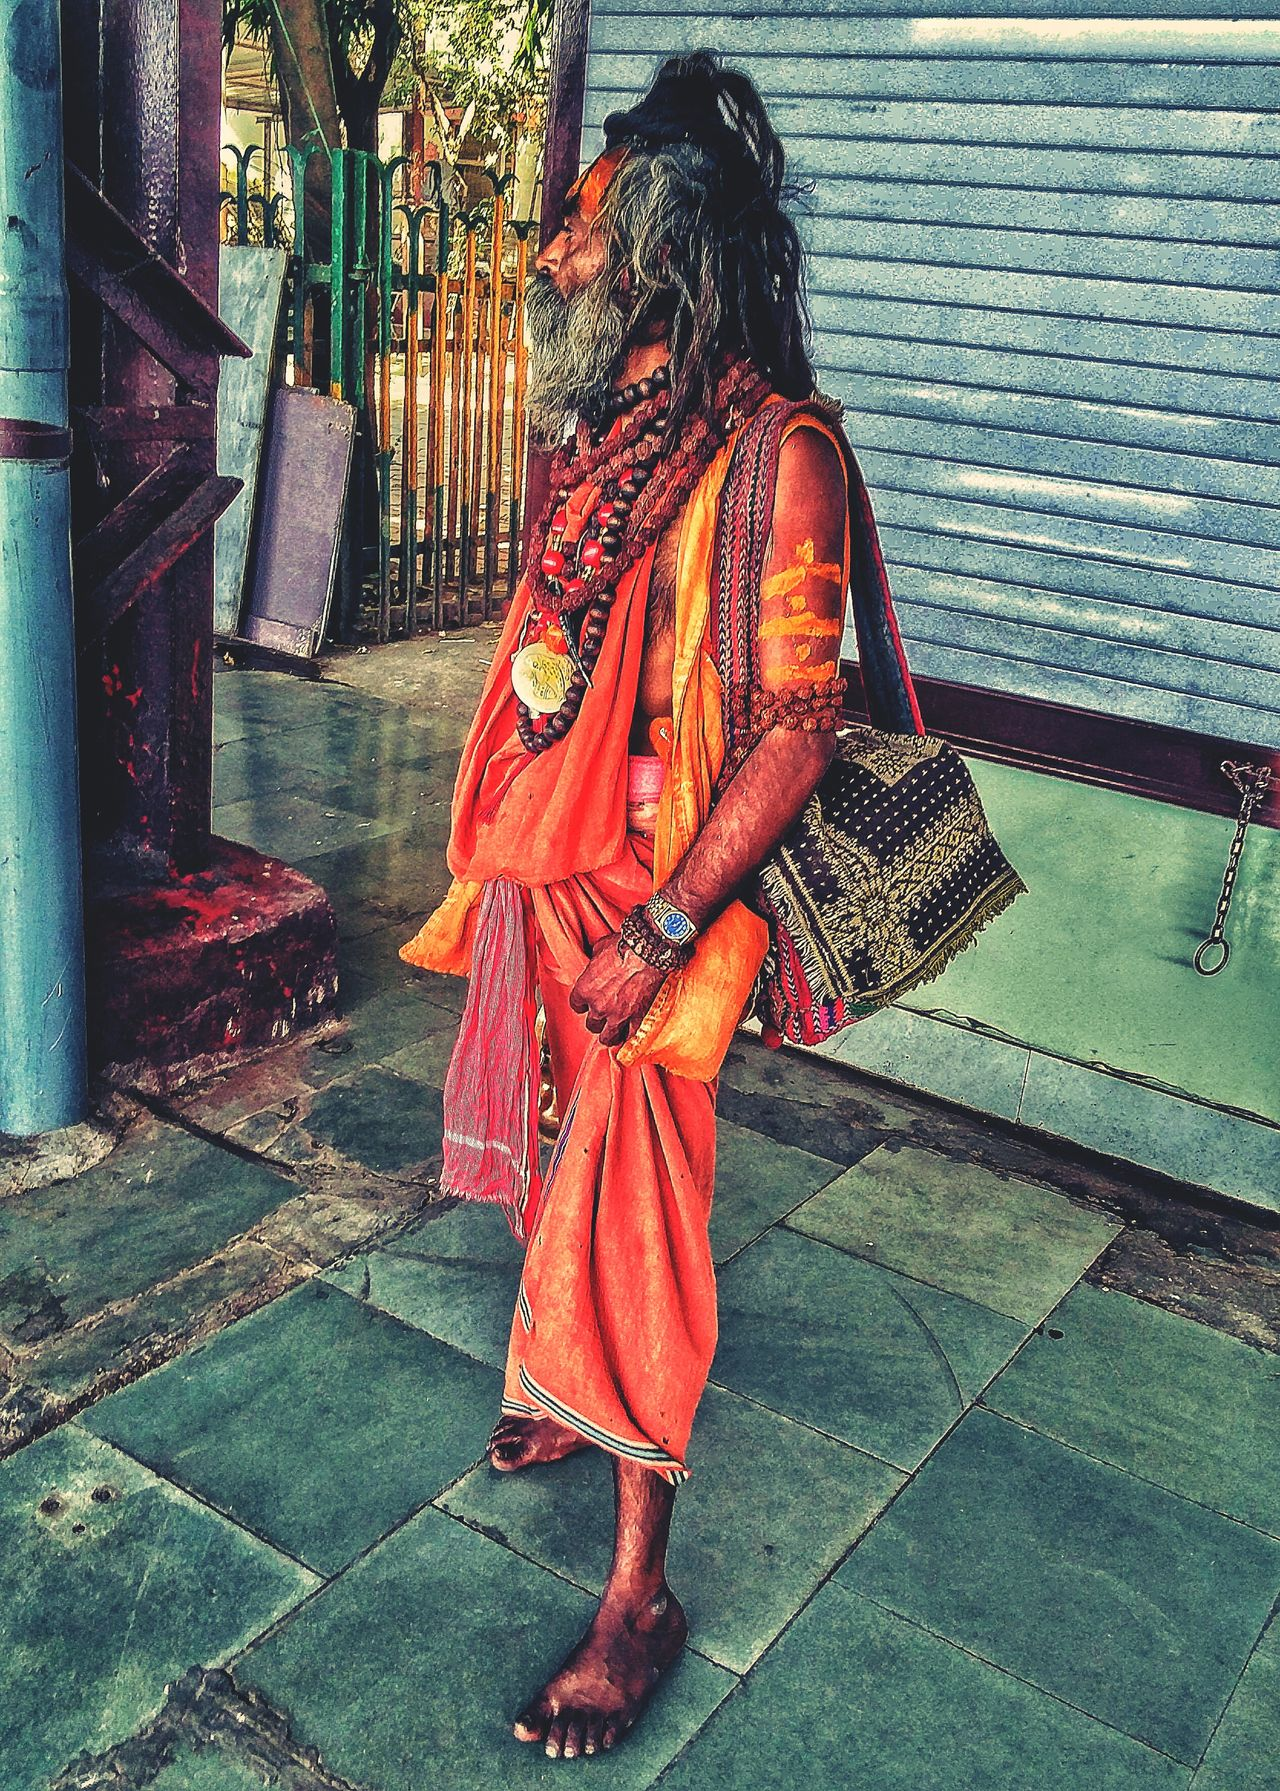 Traditional Clothing One Person Standing Religion Sage Shiva Devotee NOMAD Nomadic Life Traditional Culture Indian Sage Long Hair Man The Street Photographer - 2017 EyeEm Awards